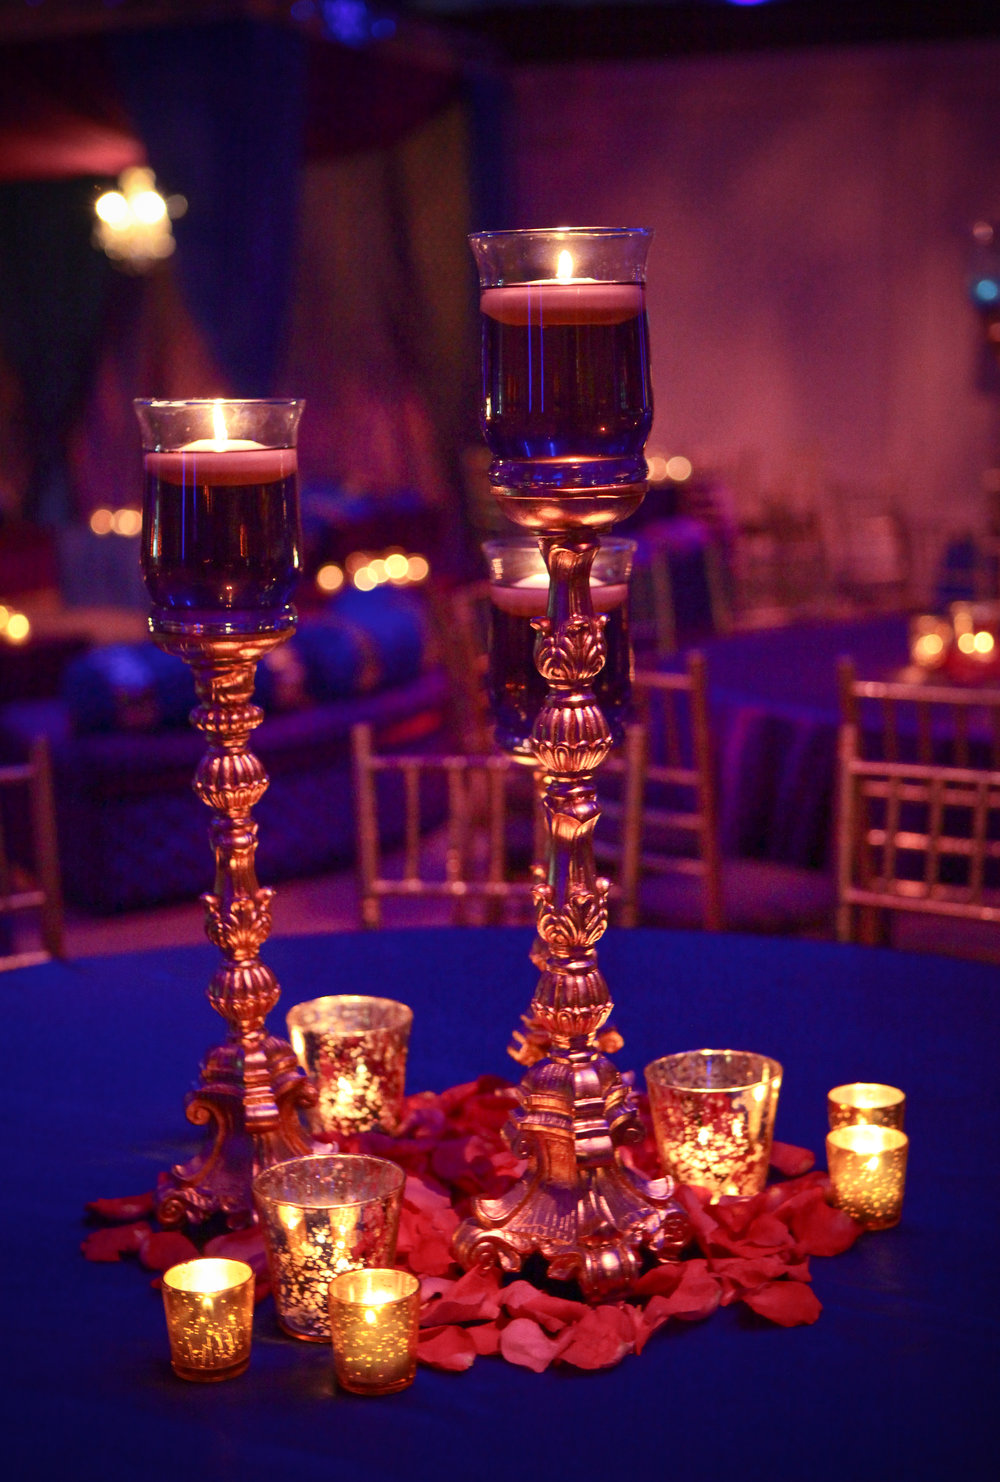 Centerpiece with Mercury Glass Votives and Candlesticks